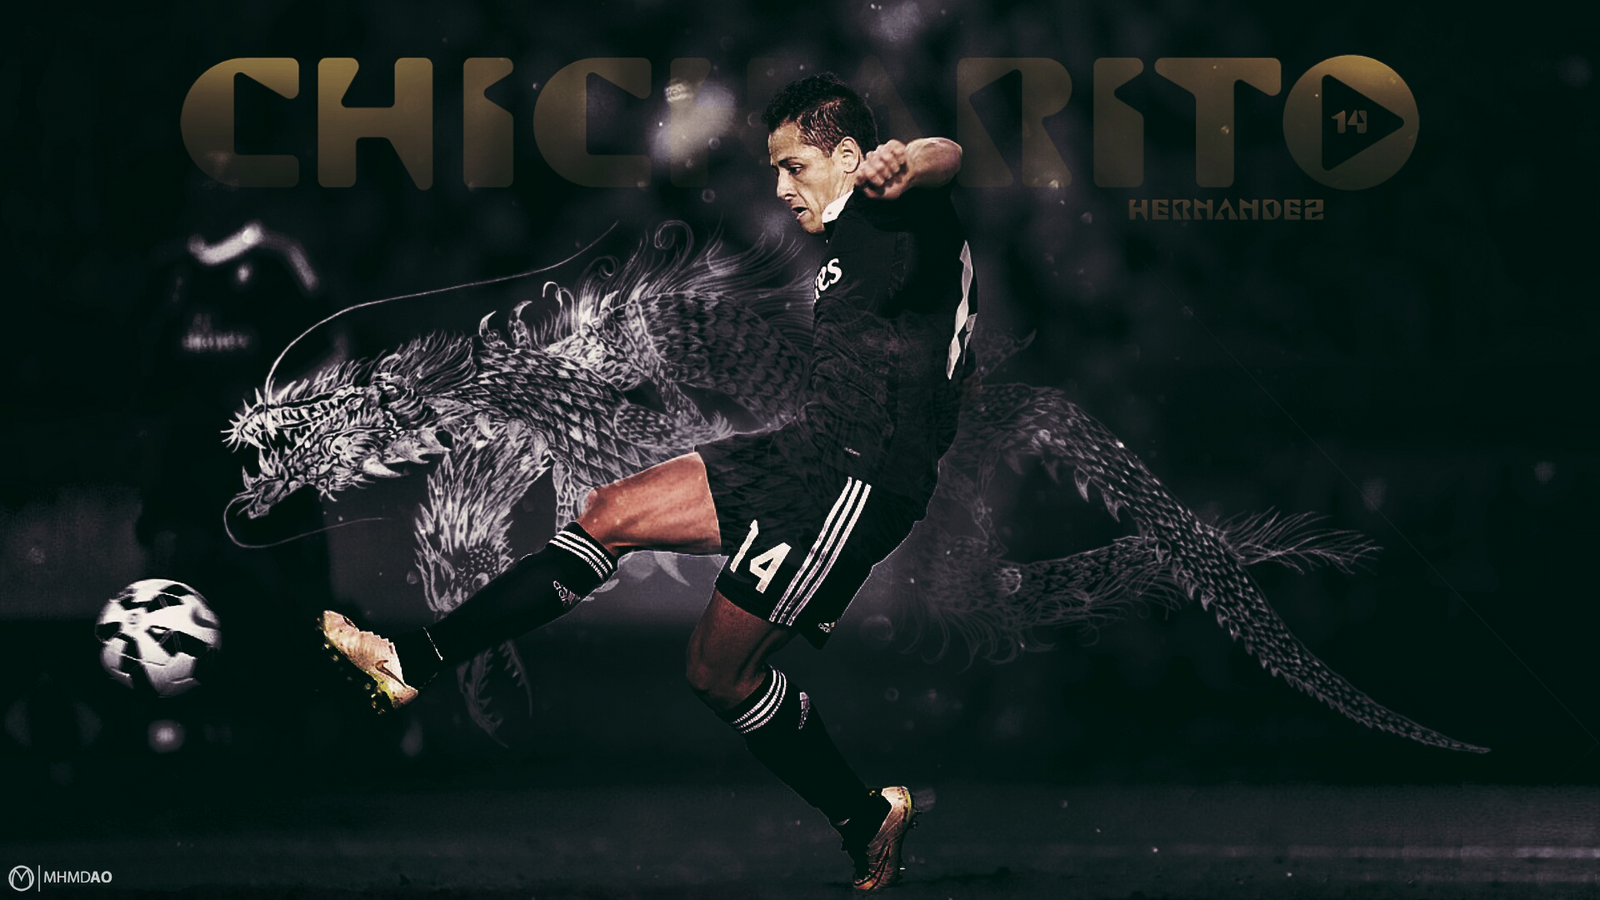 Chicharito Hernandez 2015 Wallpaper